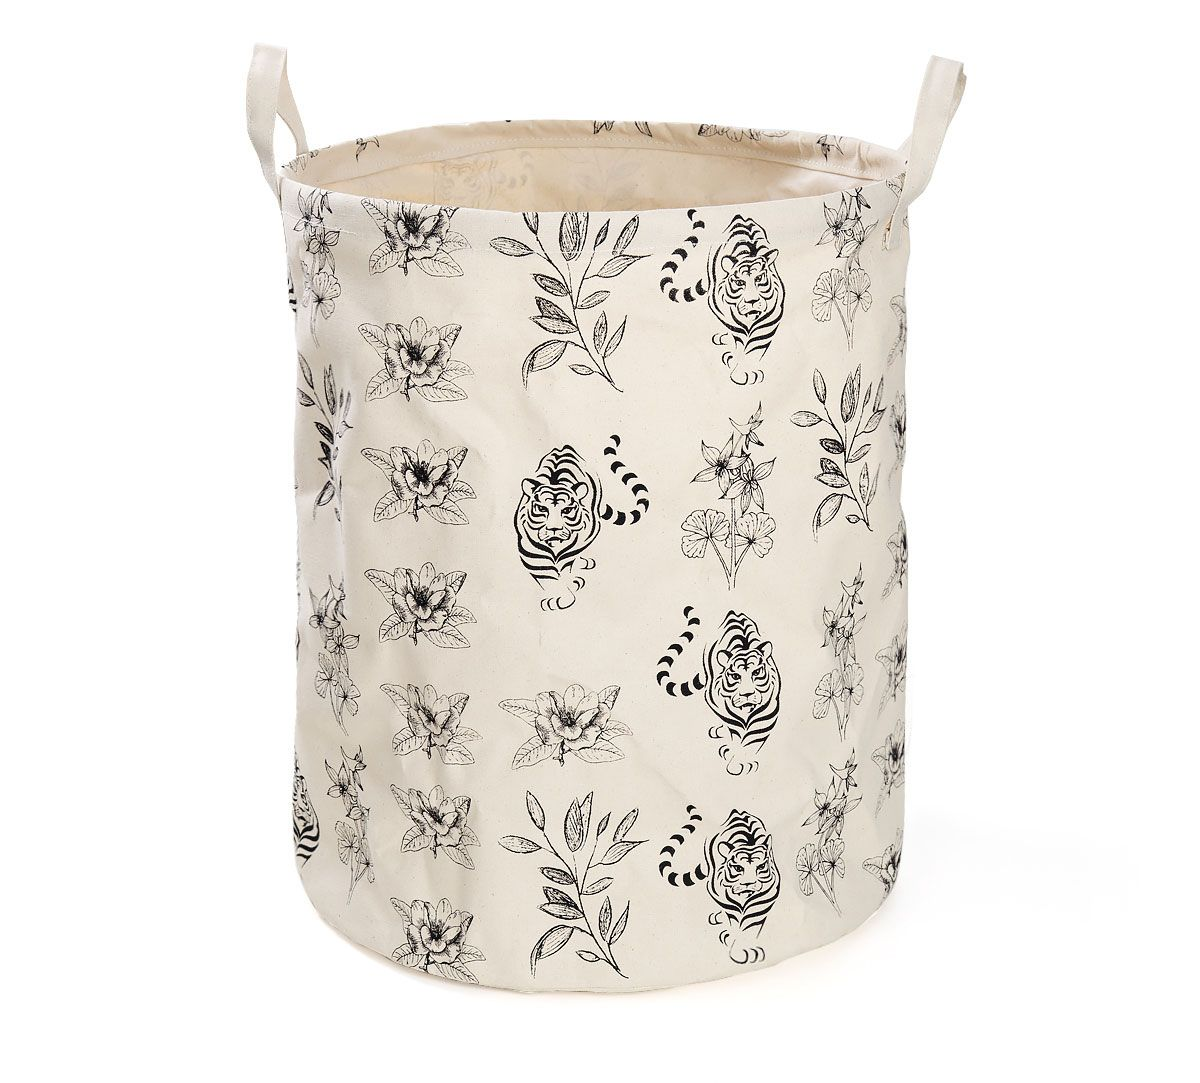 India Circus White Floral Sketch Round Laundry Basket